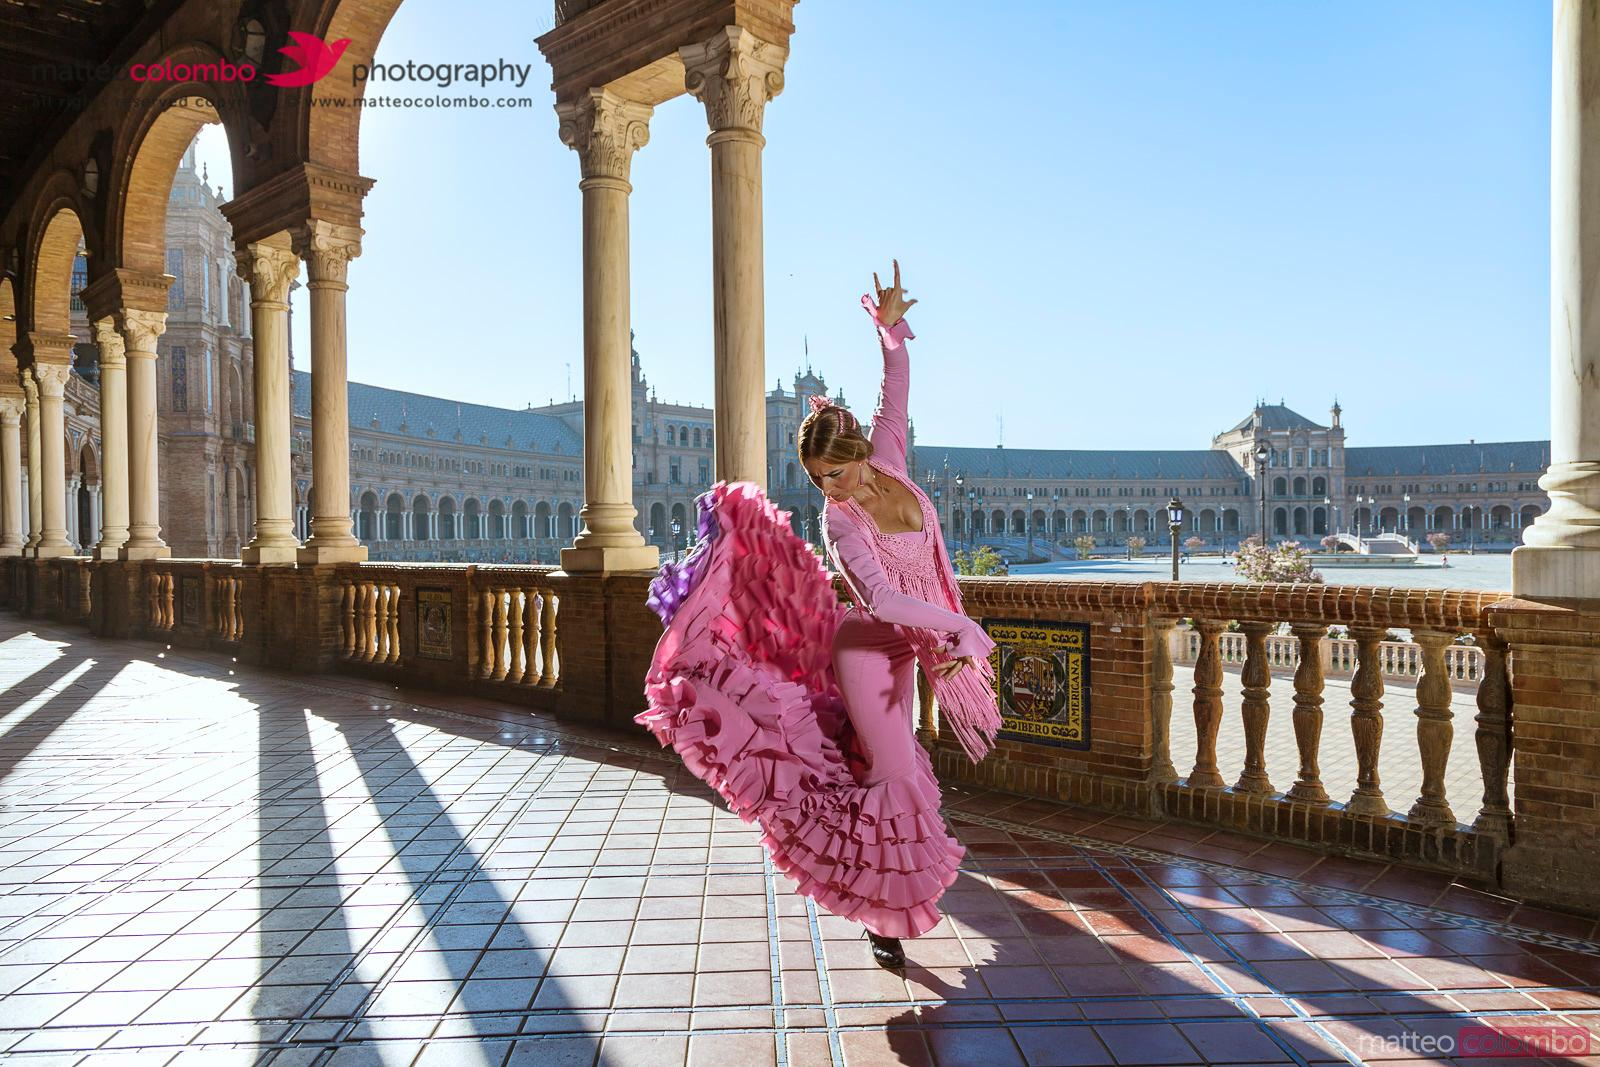 Matteo colombo travel photography flamenco dancer in for Espectaculo flamenco seville sevilla